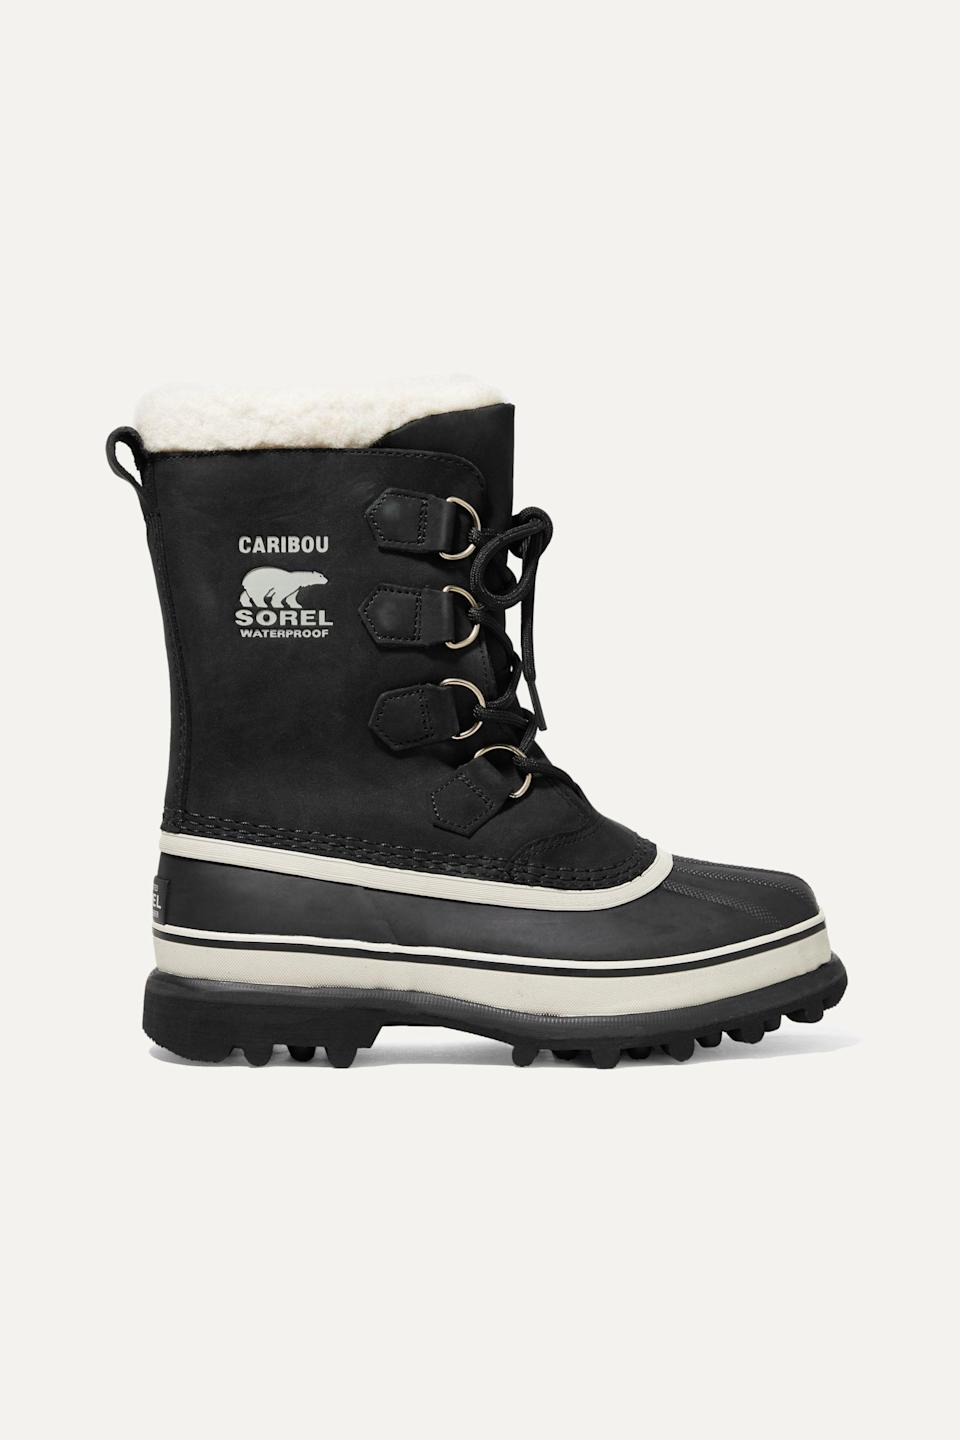 """<p><strong>Sorel</strong></p><p>net-a-porter.com</p><p><strong>$160.00</strong></p><p><a href=""""https://go.redirectingat.com?id=74968X1596630&url=https%3A%2F%2Fwww.net-a-porter.com%2Fen-us%2Fshop%2Fproduct%2Fsorel%2Fcaribou-waterproof-nubuck-and-rubber-boots%2F1064020&sref=https%3A%2F%2Fwww.harpersbazaar.com%2Ffashion%2Ftrends%2Fg3124%2Fbest-snow-boots%2F"""" rel=""""nofollow noopener"""" target=""""_blank"""" data-ylk=""""slk:Shop Now"""" class=""""link rapid-noclick-resp"""">Shop Now</a></p><p>Can't go wrong with the classic Sorel boots to keep you armored for whatever unpredictable winter weather you might encounter. </p>"""